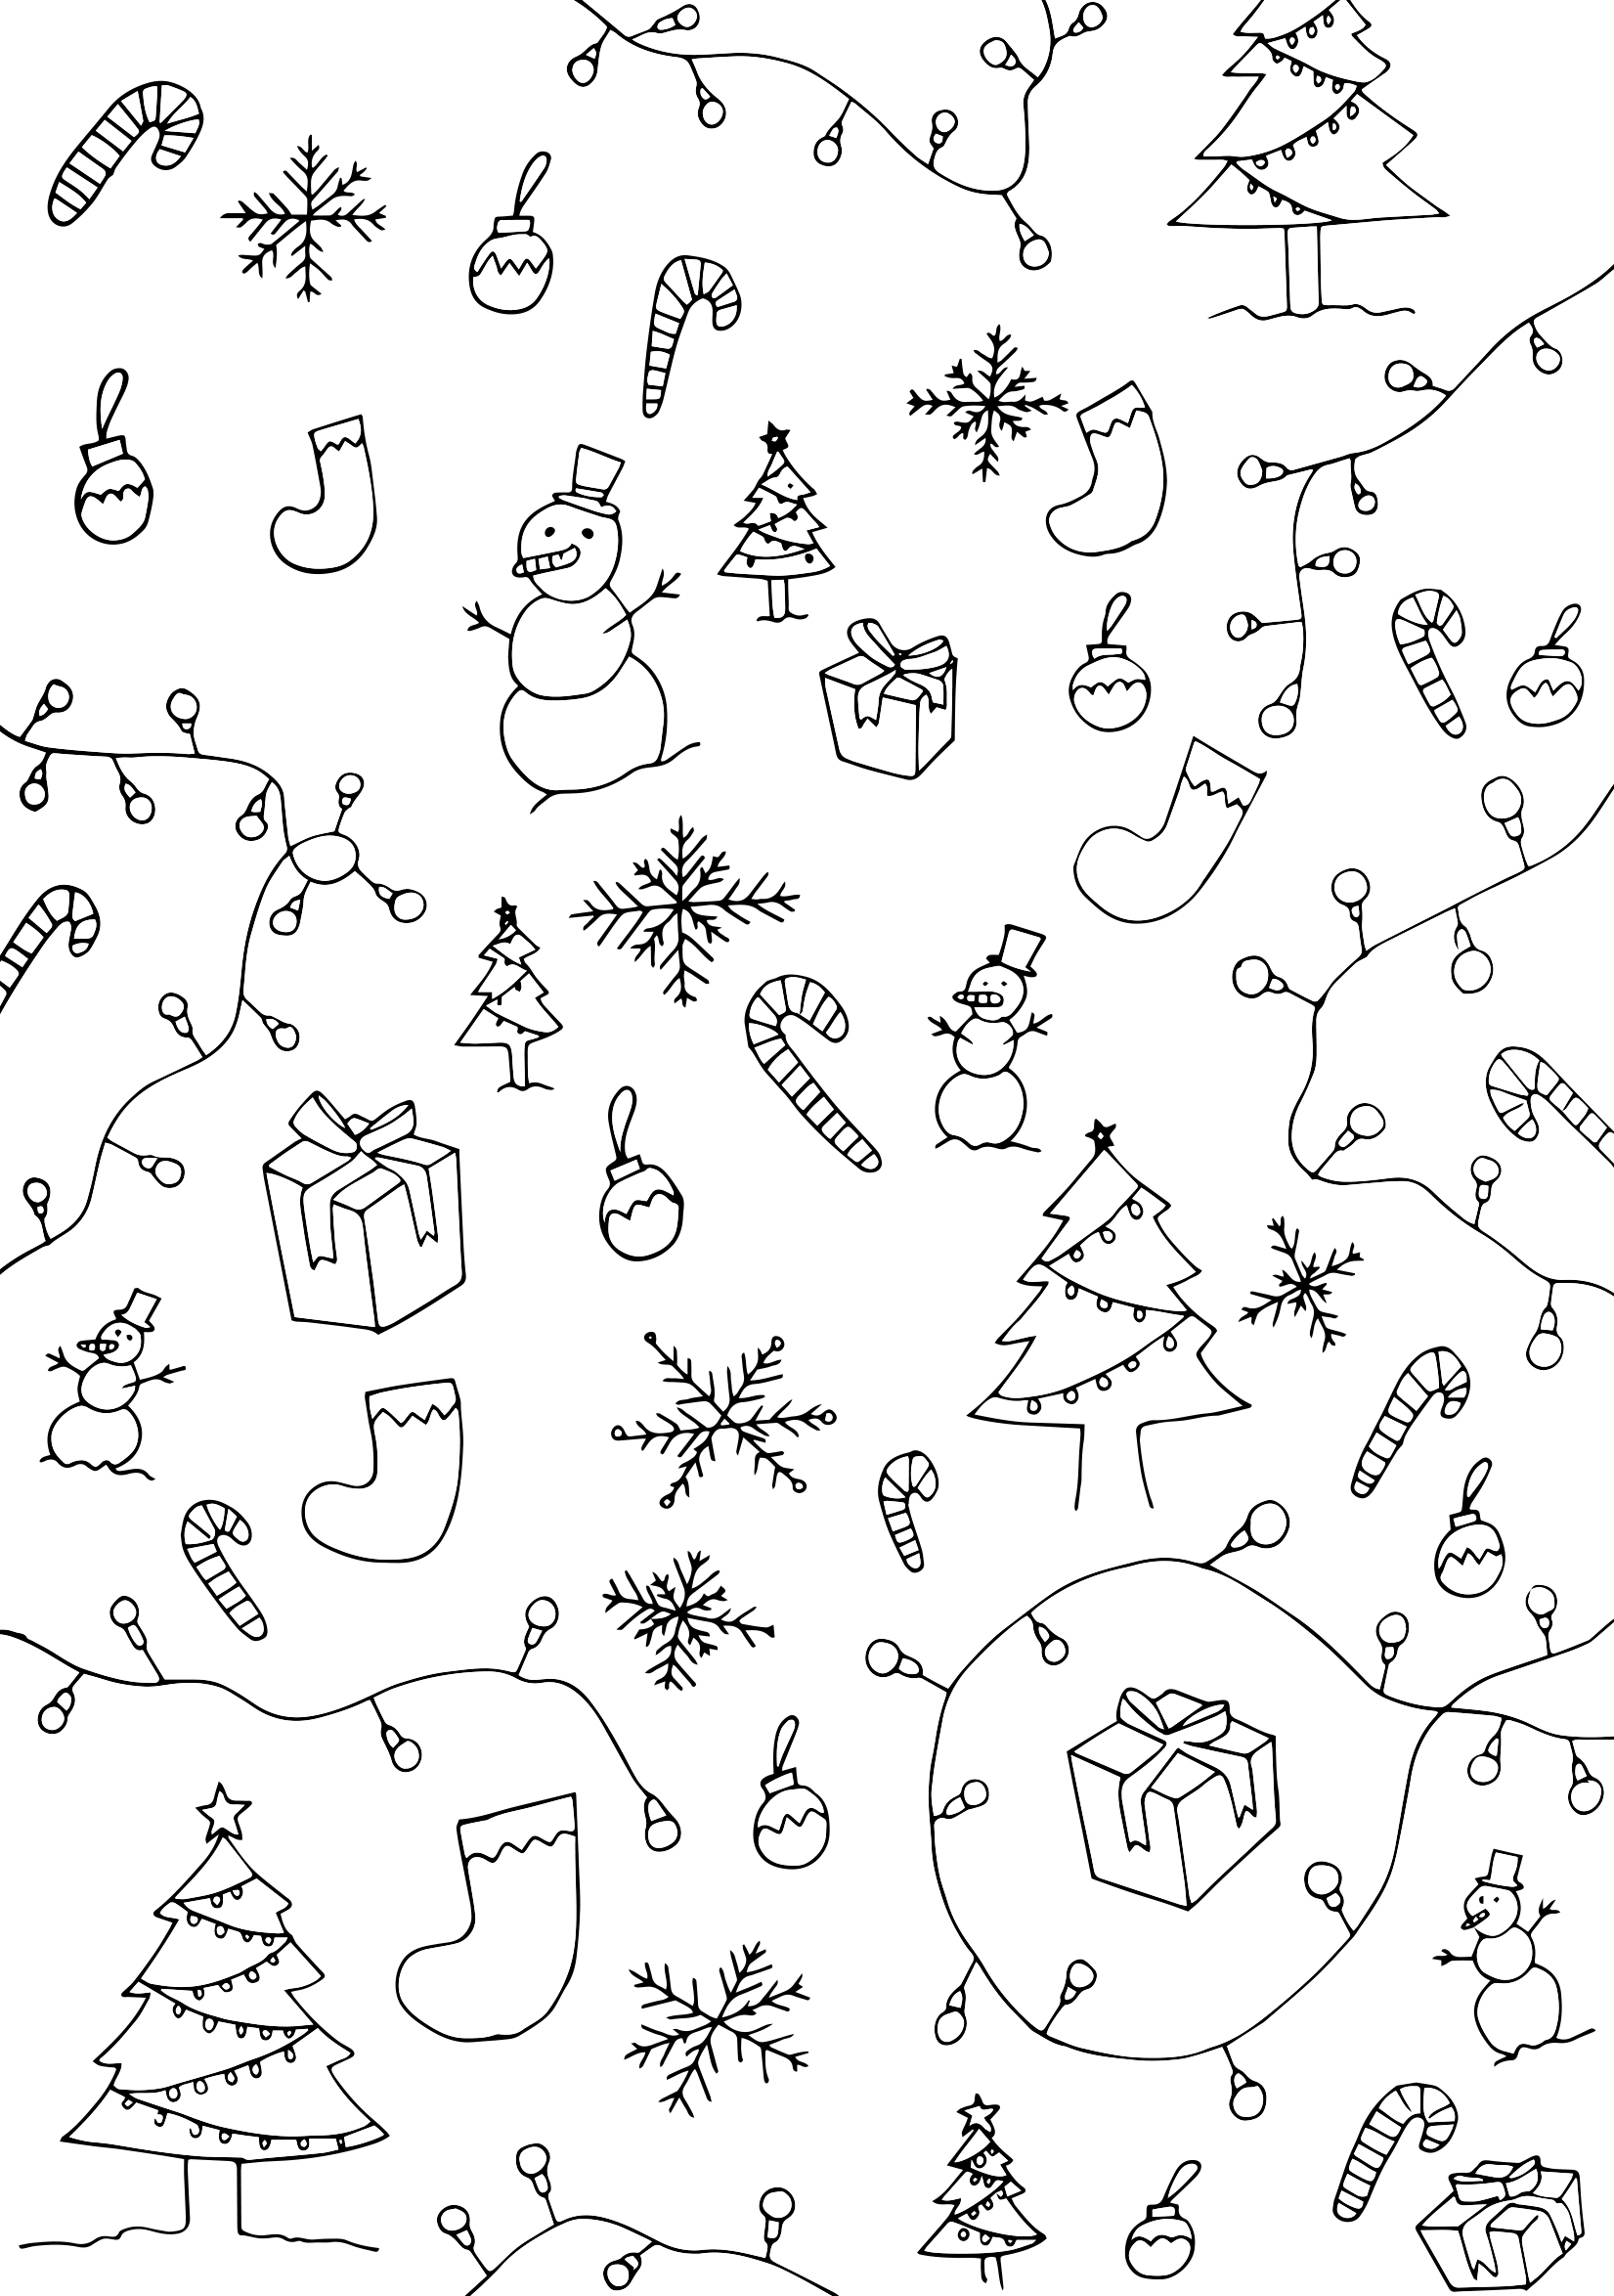 graphic about Printable Christmas Wrapping Paper called Colour-your-private Xmas wrapping paper (printables) (intro)